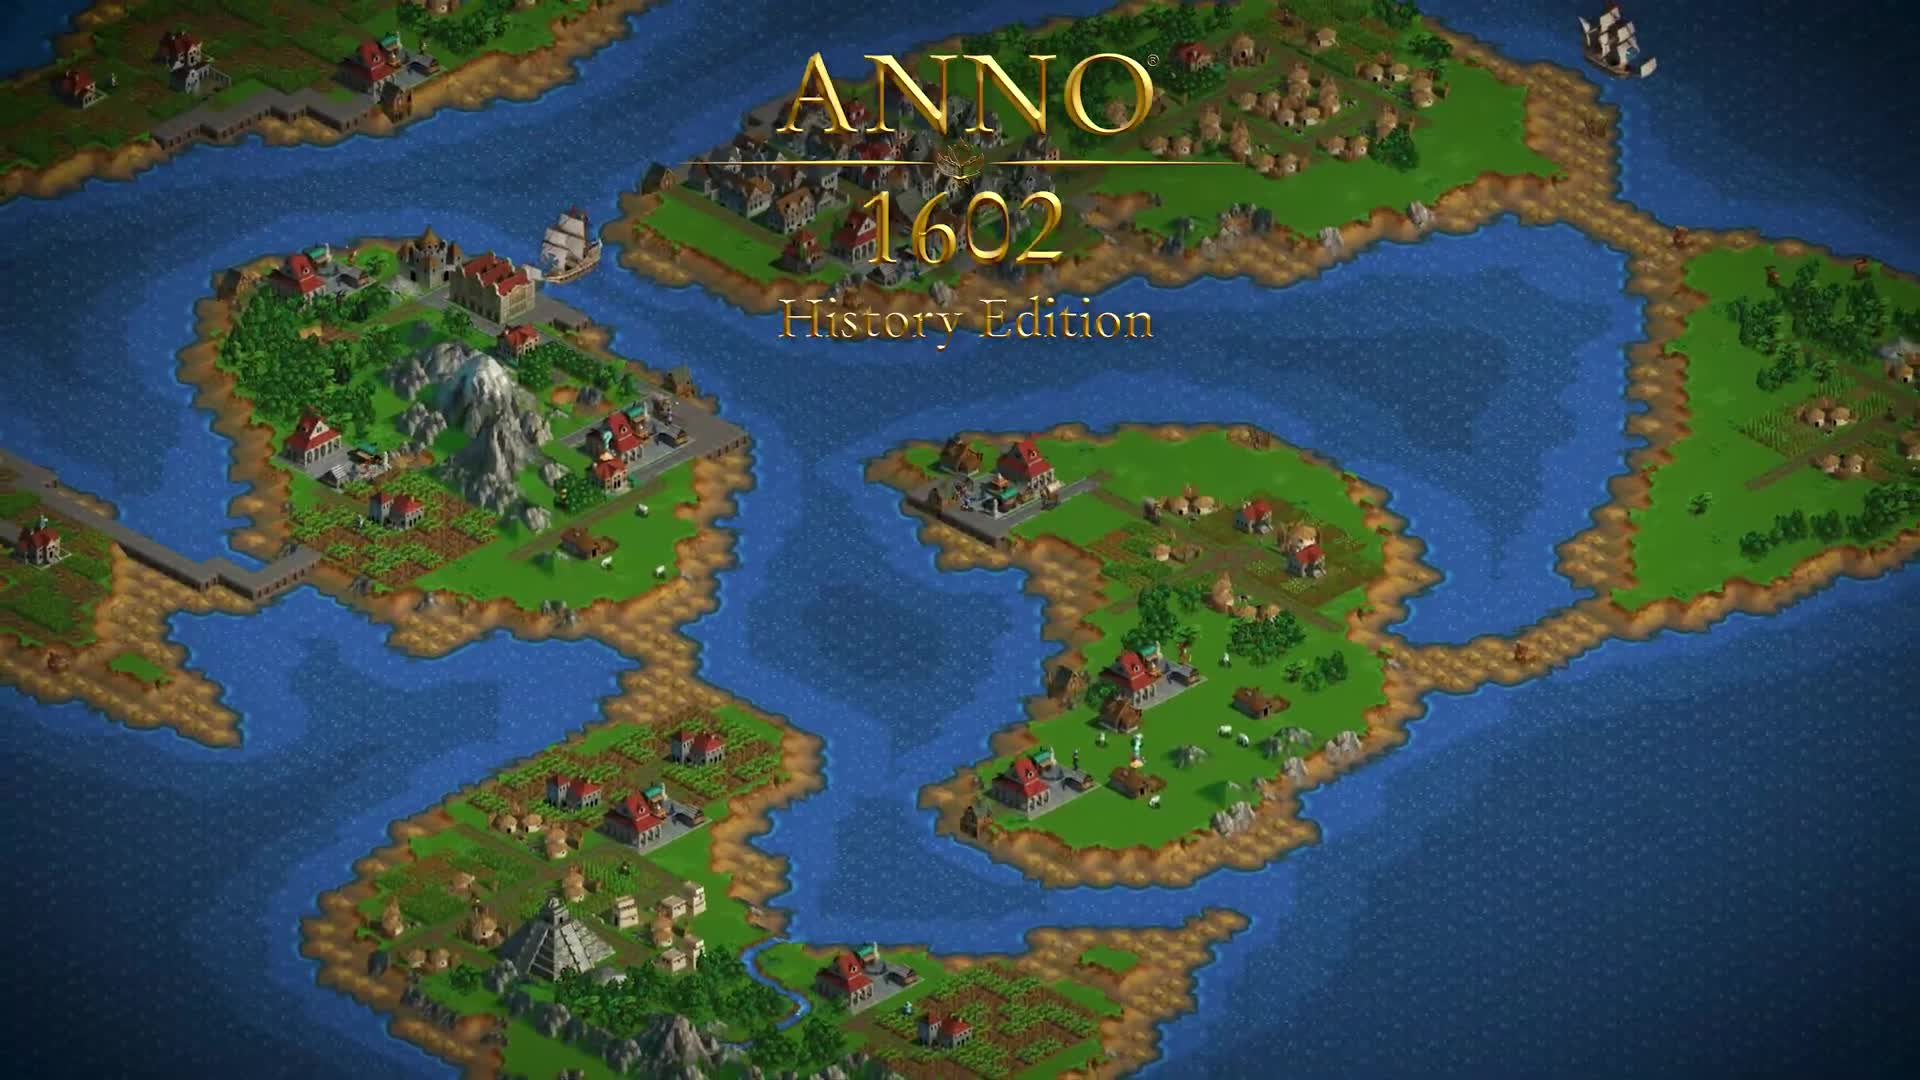 Trailer, Ubisoft, Simulation, Anno, Anno 1404, Anno 1602, Anno 1503, Anno 1701, Anno History Collection